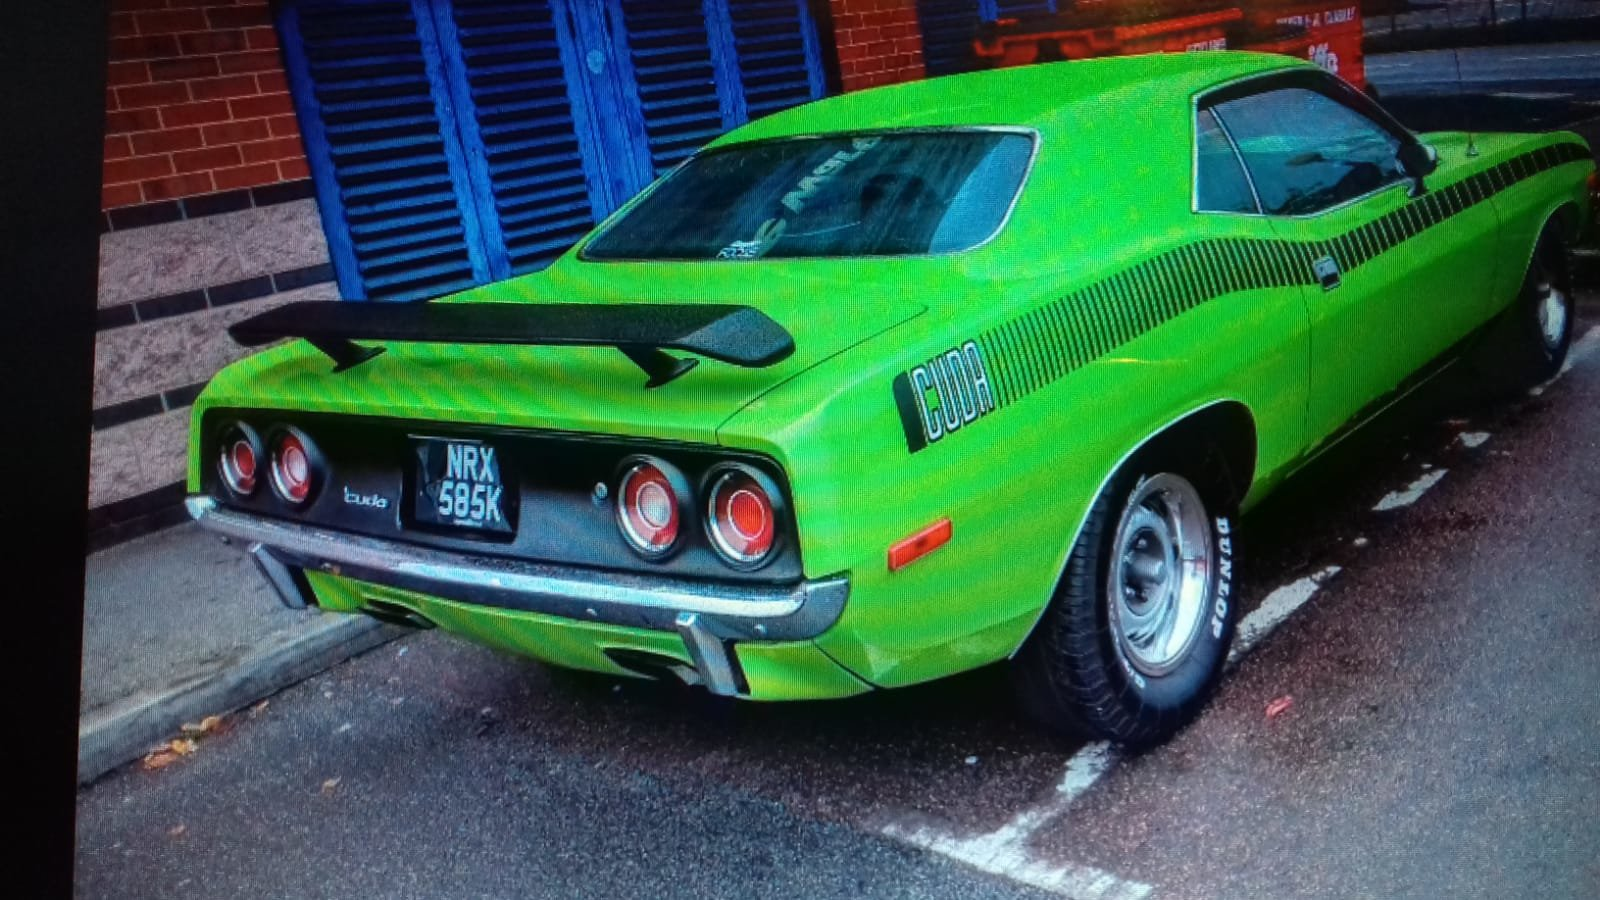 1972 Plymouth cuda 340 s matching numbers For Sale (picture 2 of 6)